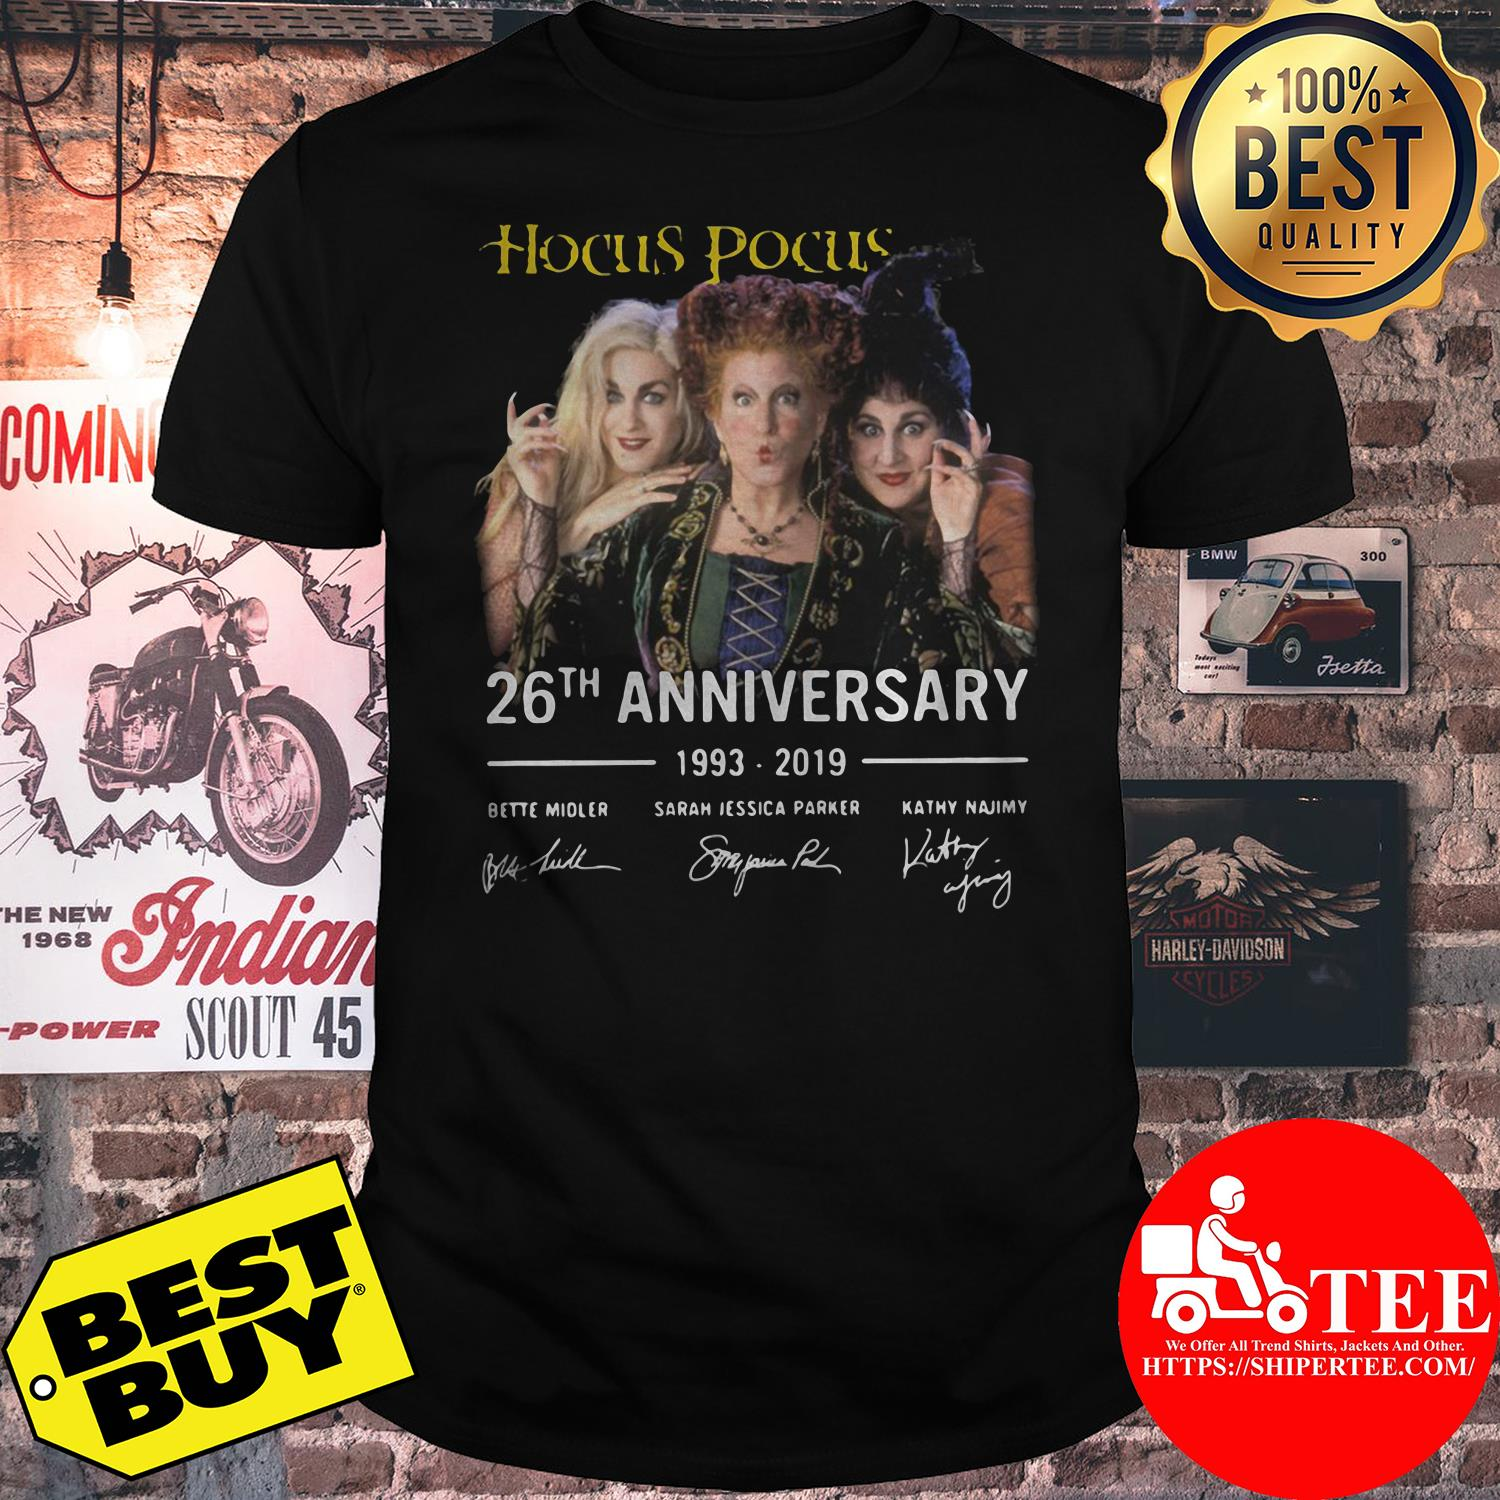 Hocus Pocus 26th anniversary 1993-2019 shirt